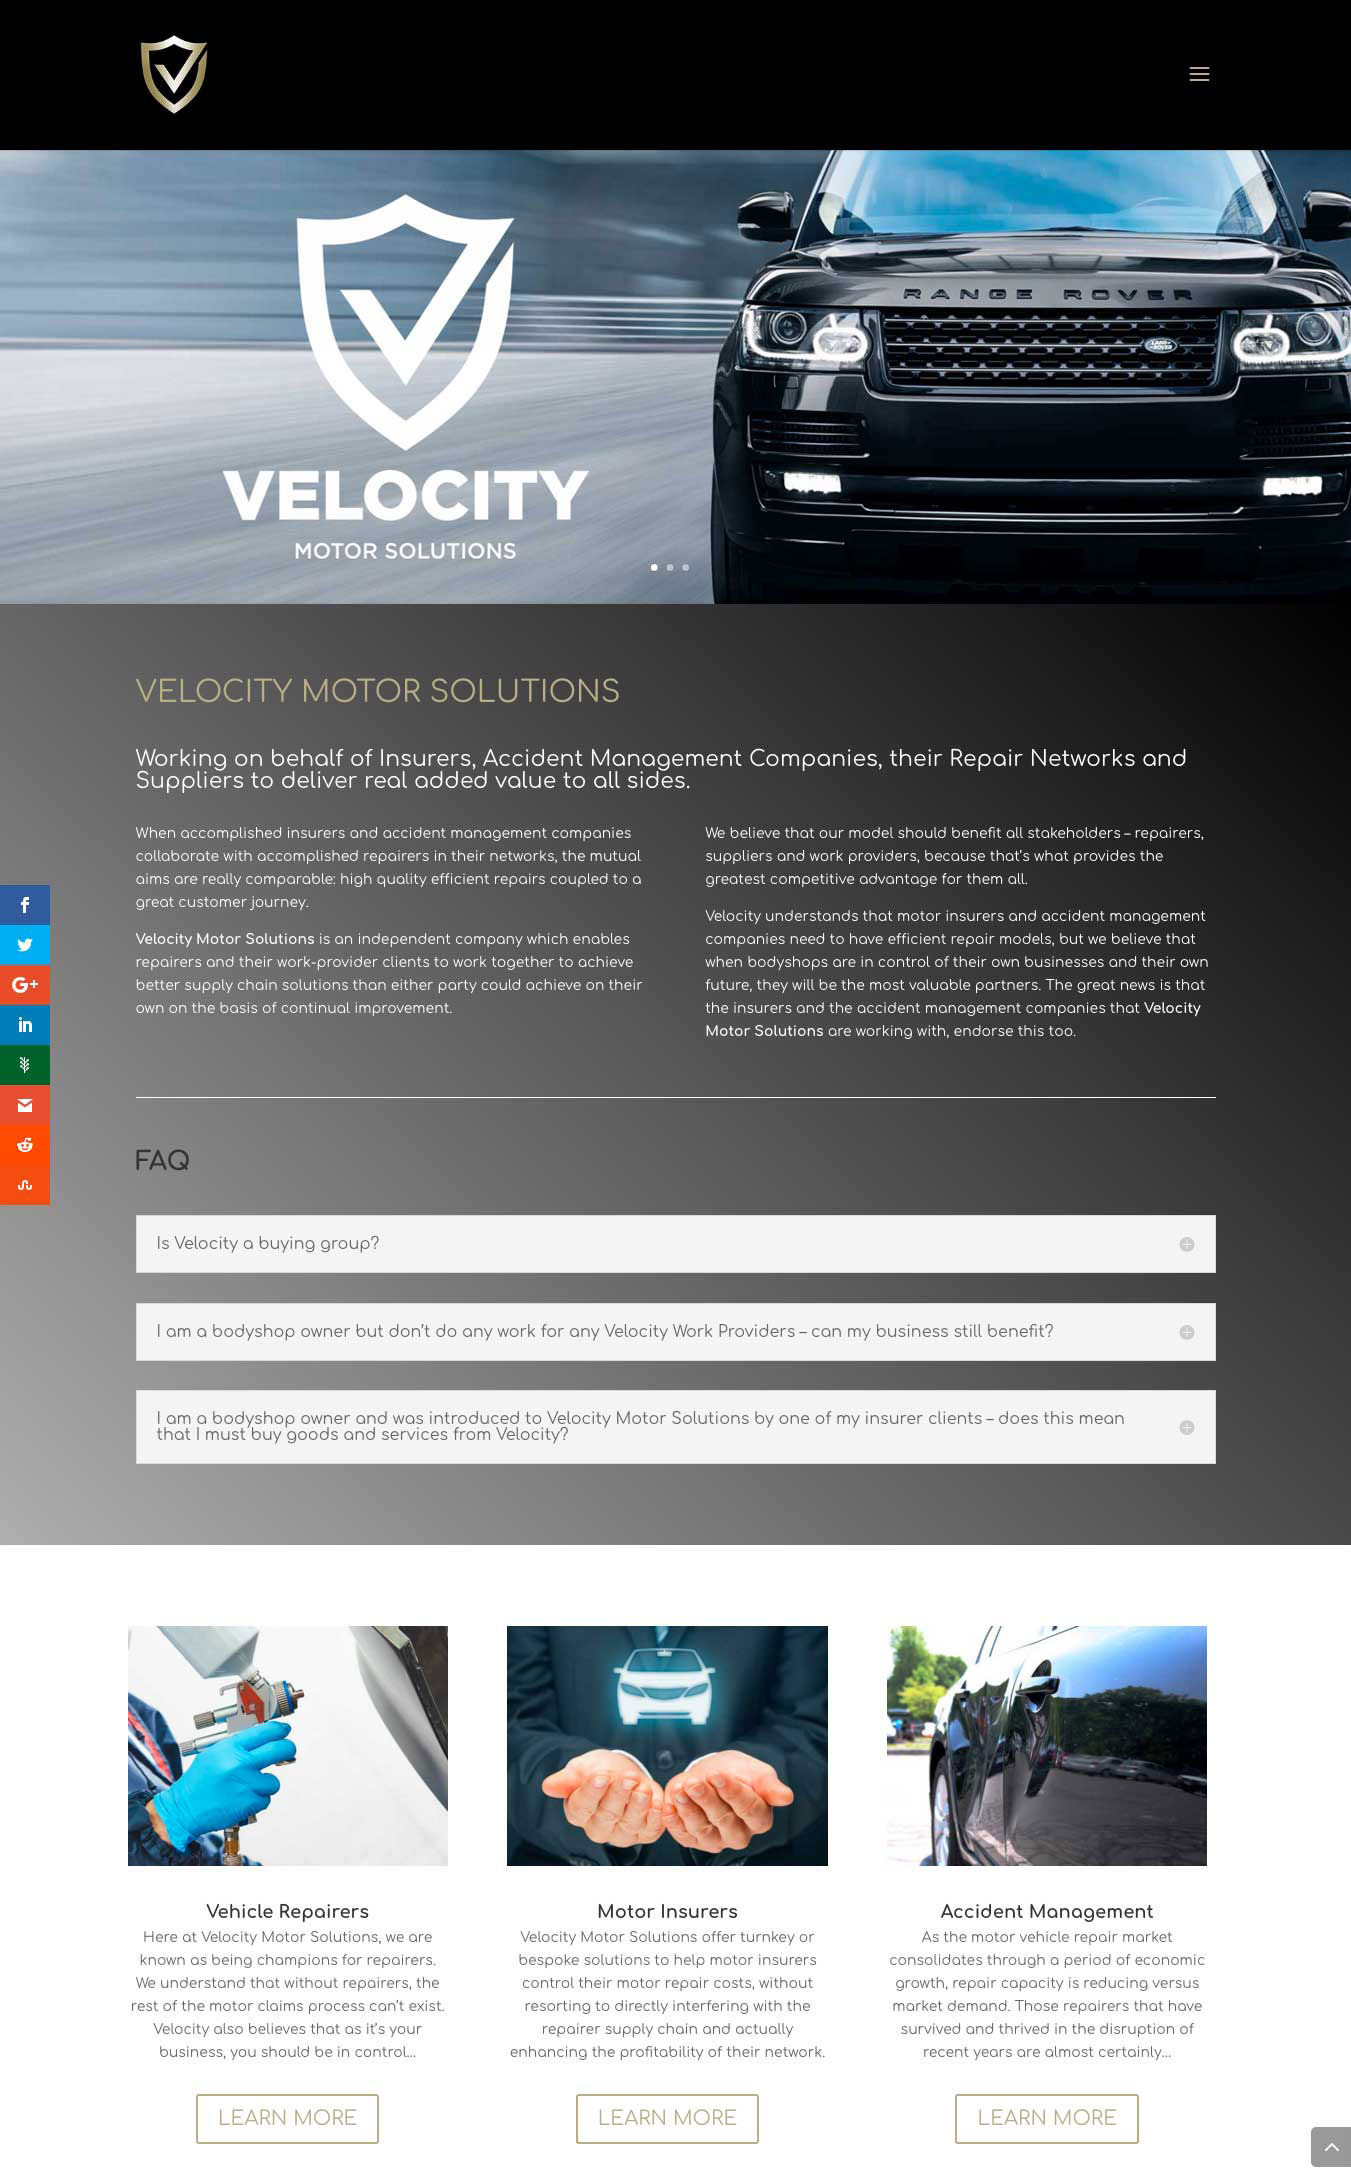 velocity website created by Twistedgifted